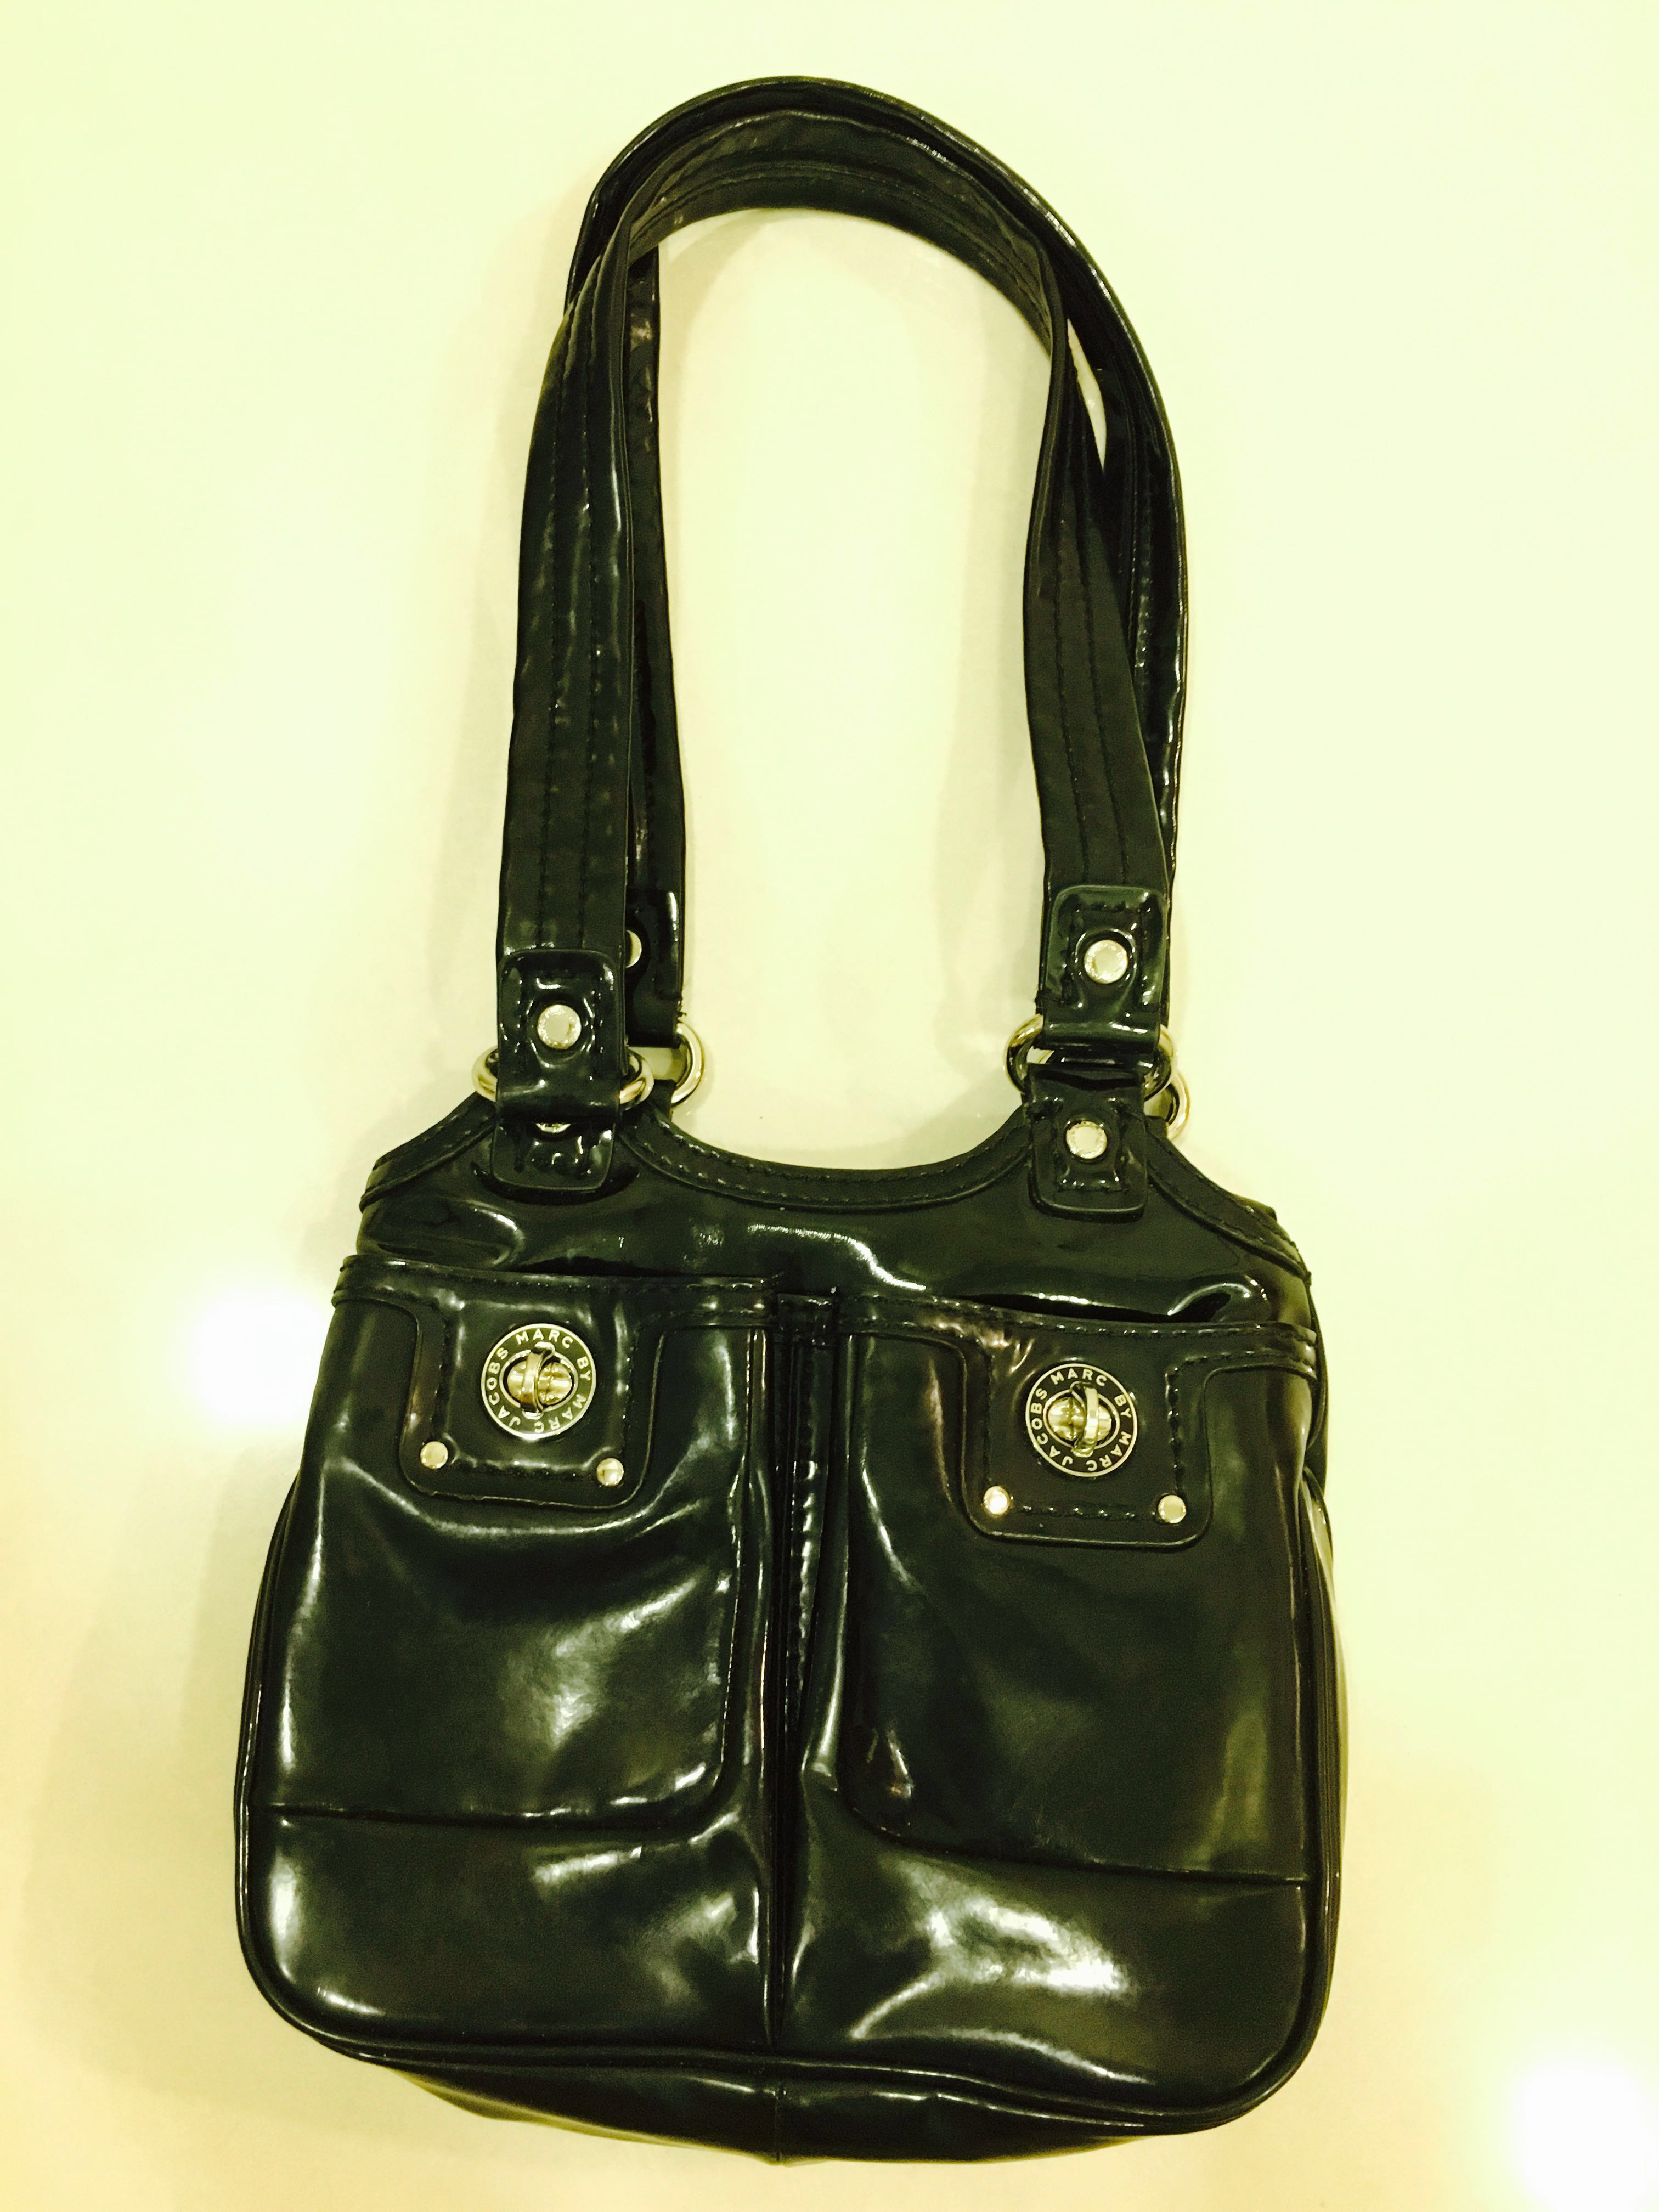 2e373a9f28 Authentic Marc by Marc Jacobs PVC black leather bag [TO CLEAR], Women's  Fashion, Bags & Wallets, Others on Carousell